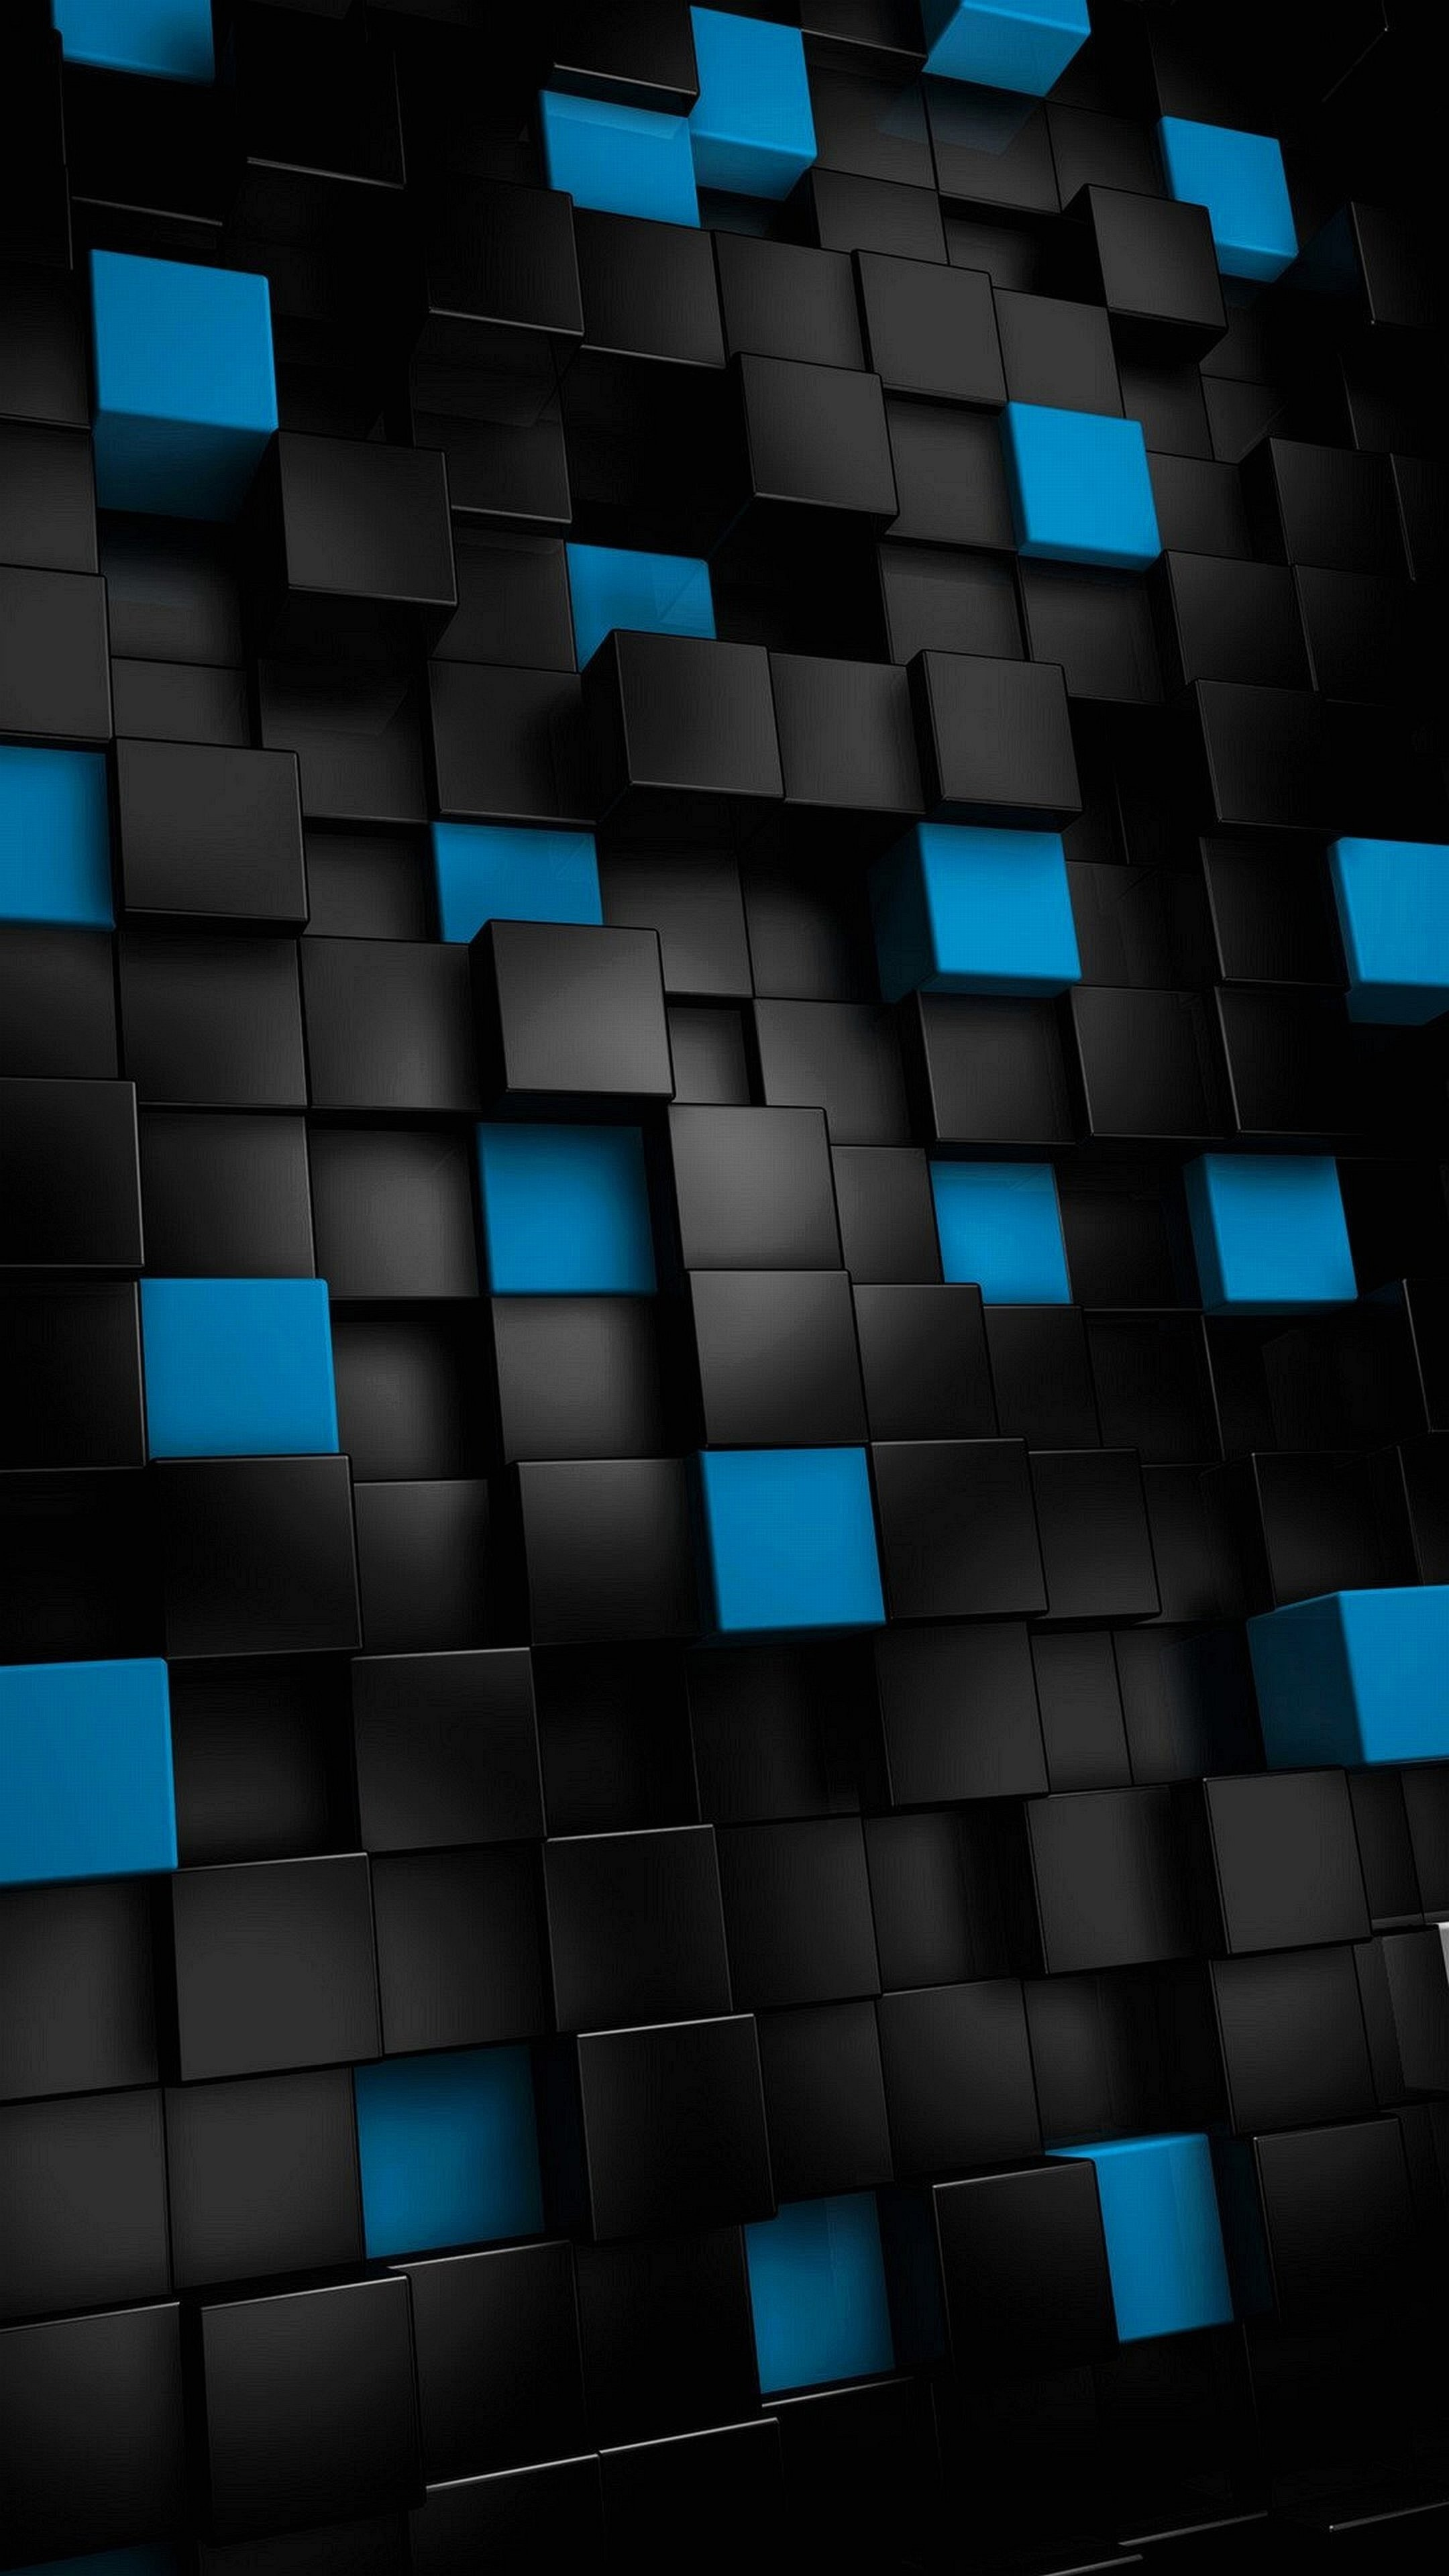 2160x3840 blue and black awesome image for iphone 6